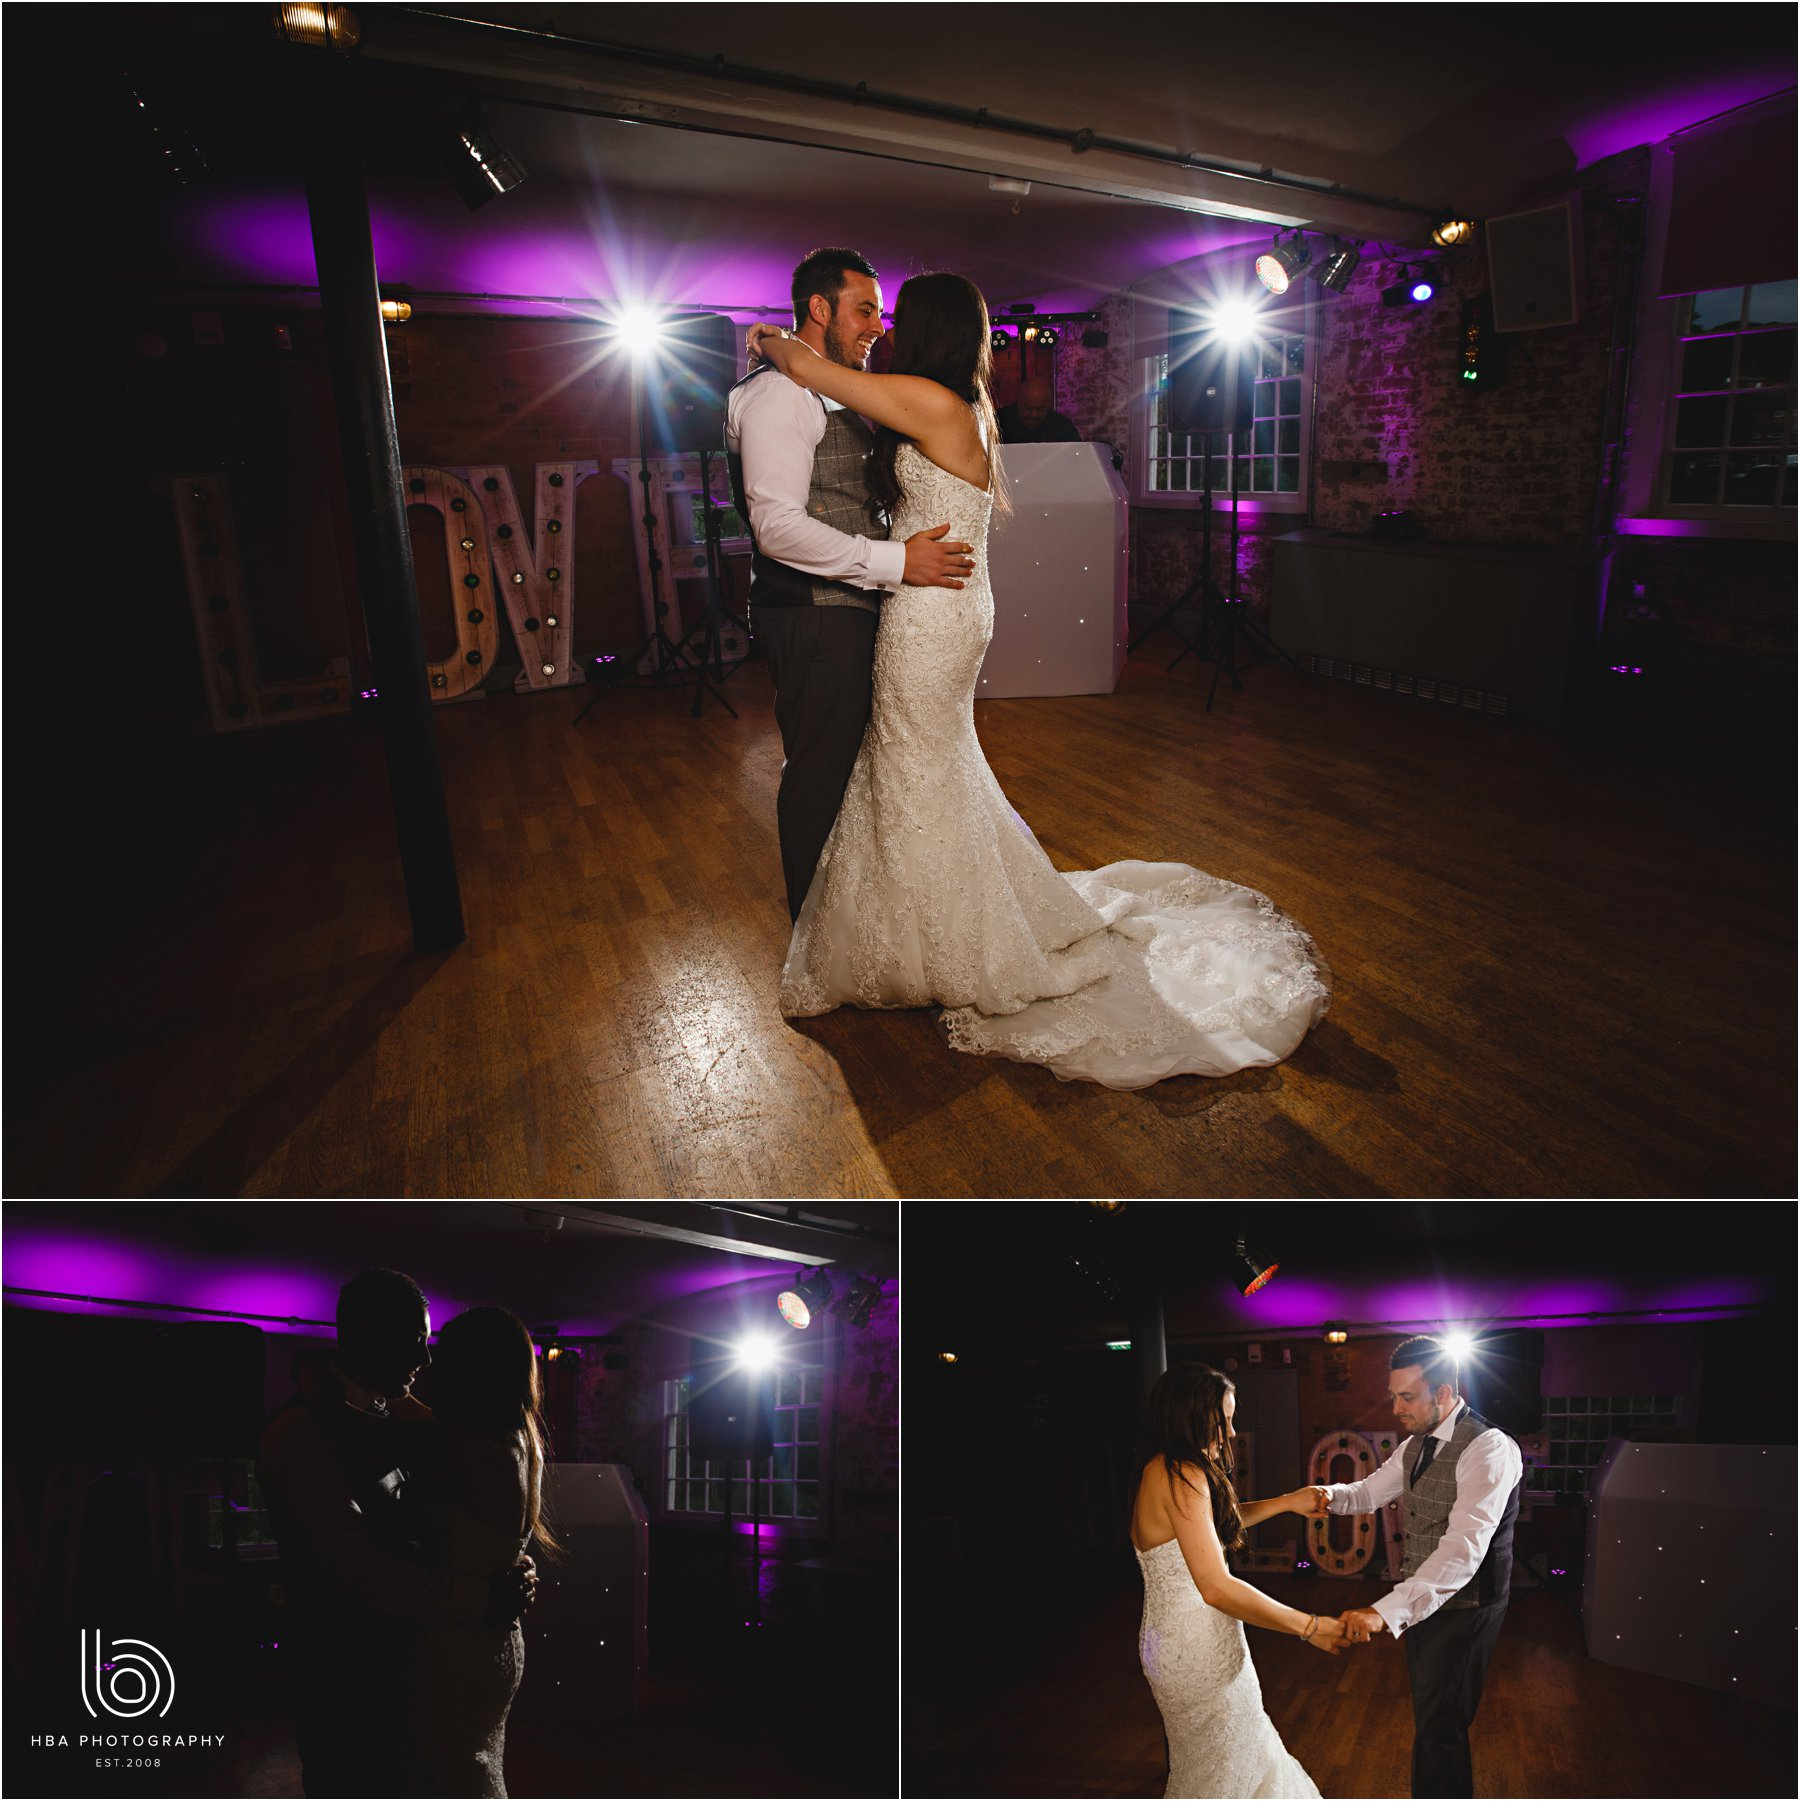 the bride & groom's first dance